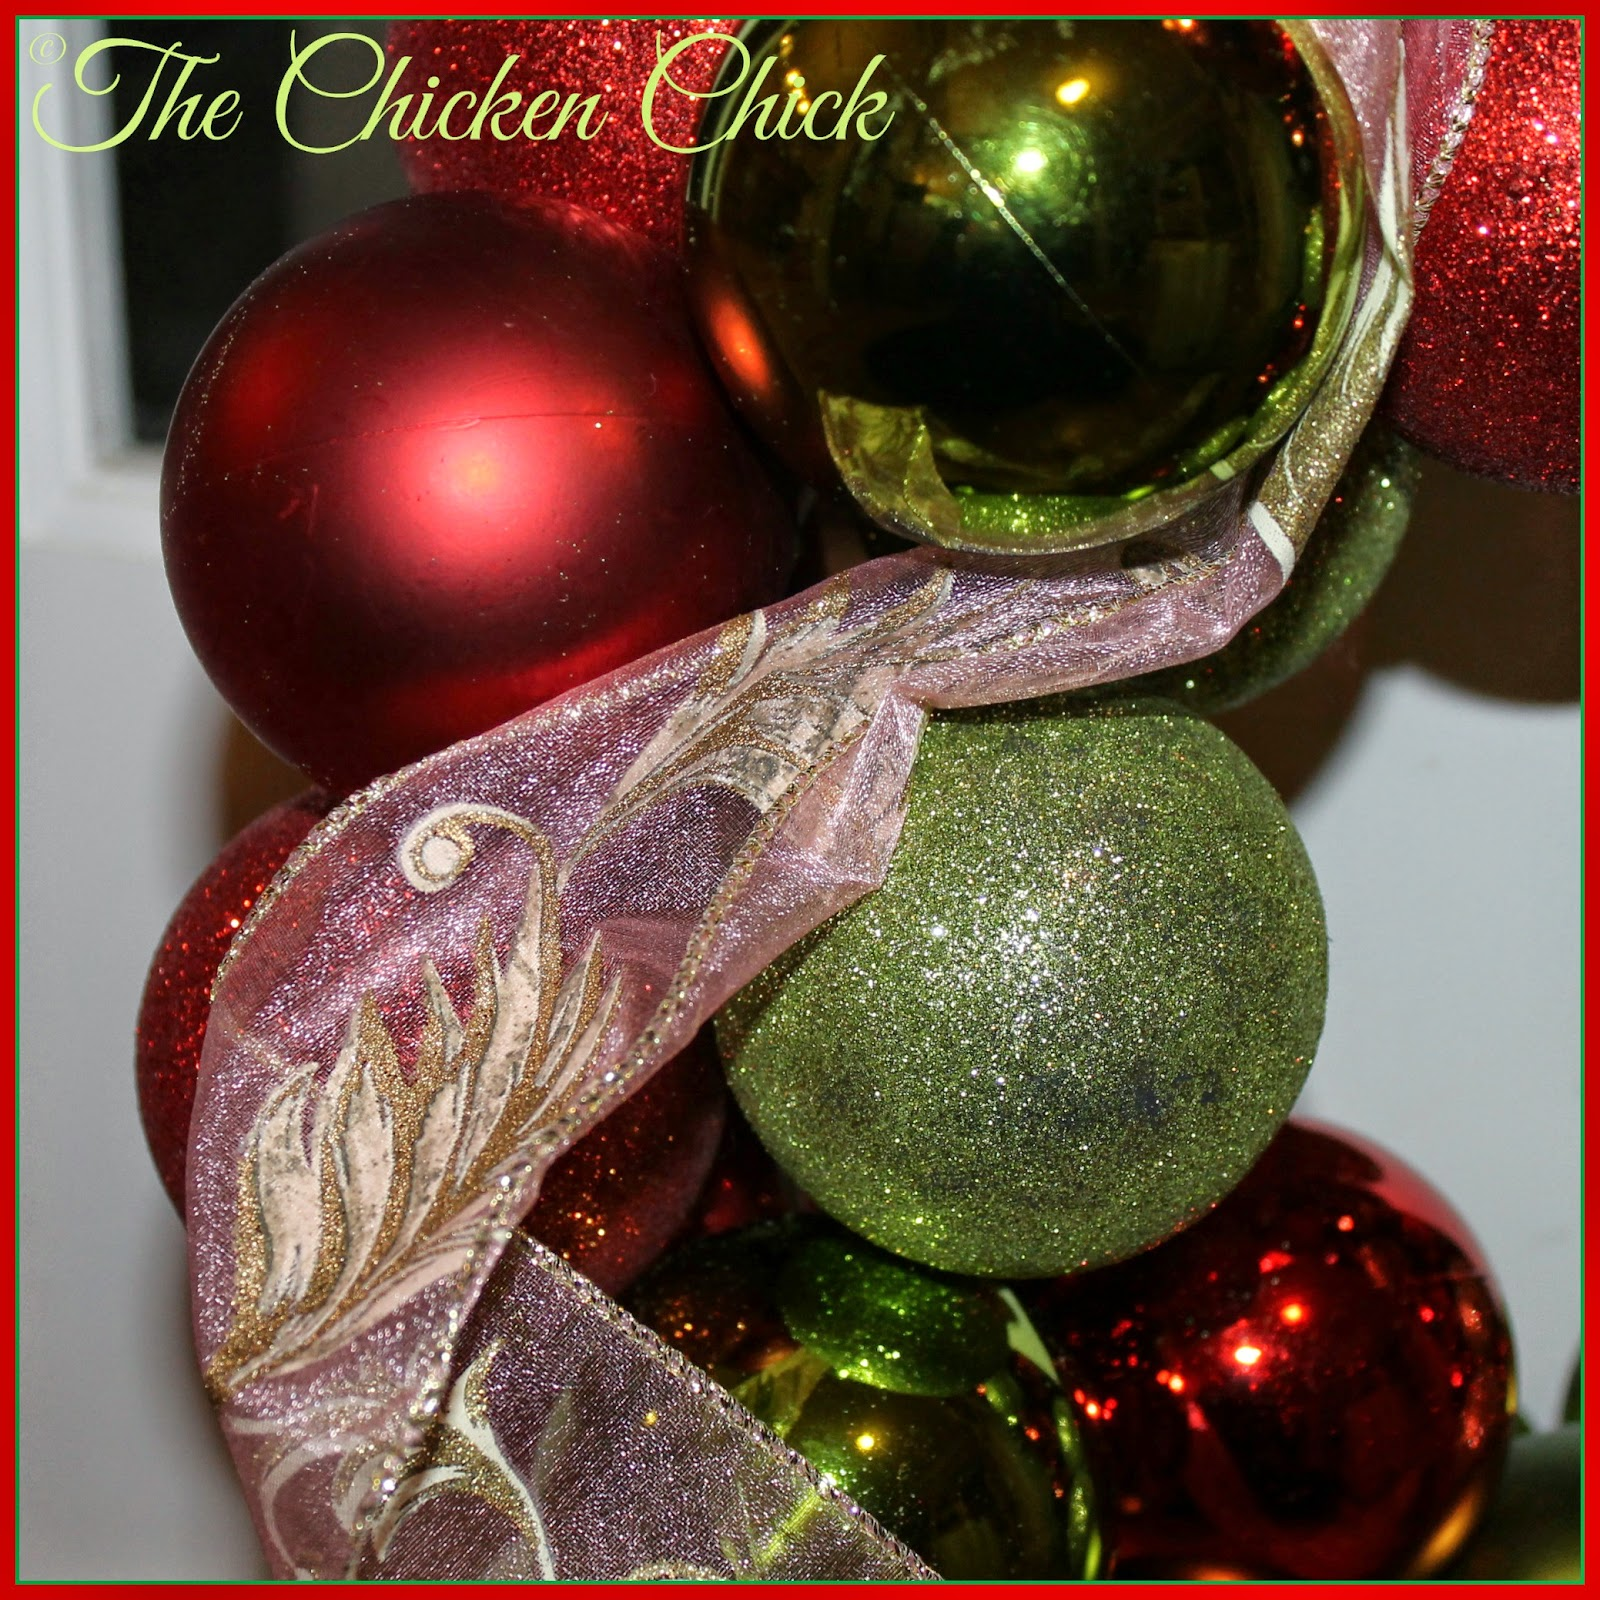 Chicken christmas ornaments - Optional Twist A Complimentary Colored Wired Ribbon In And Among The Ornaments